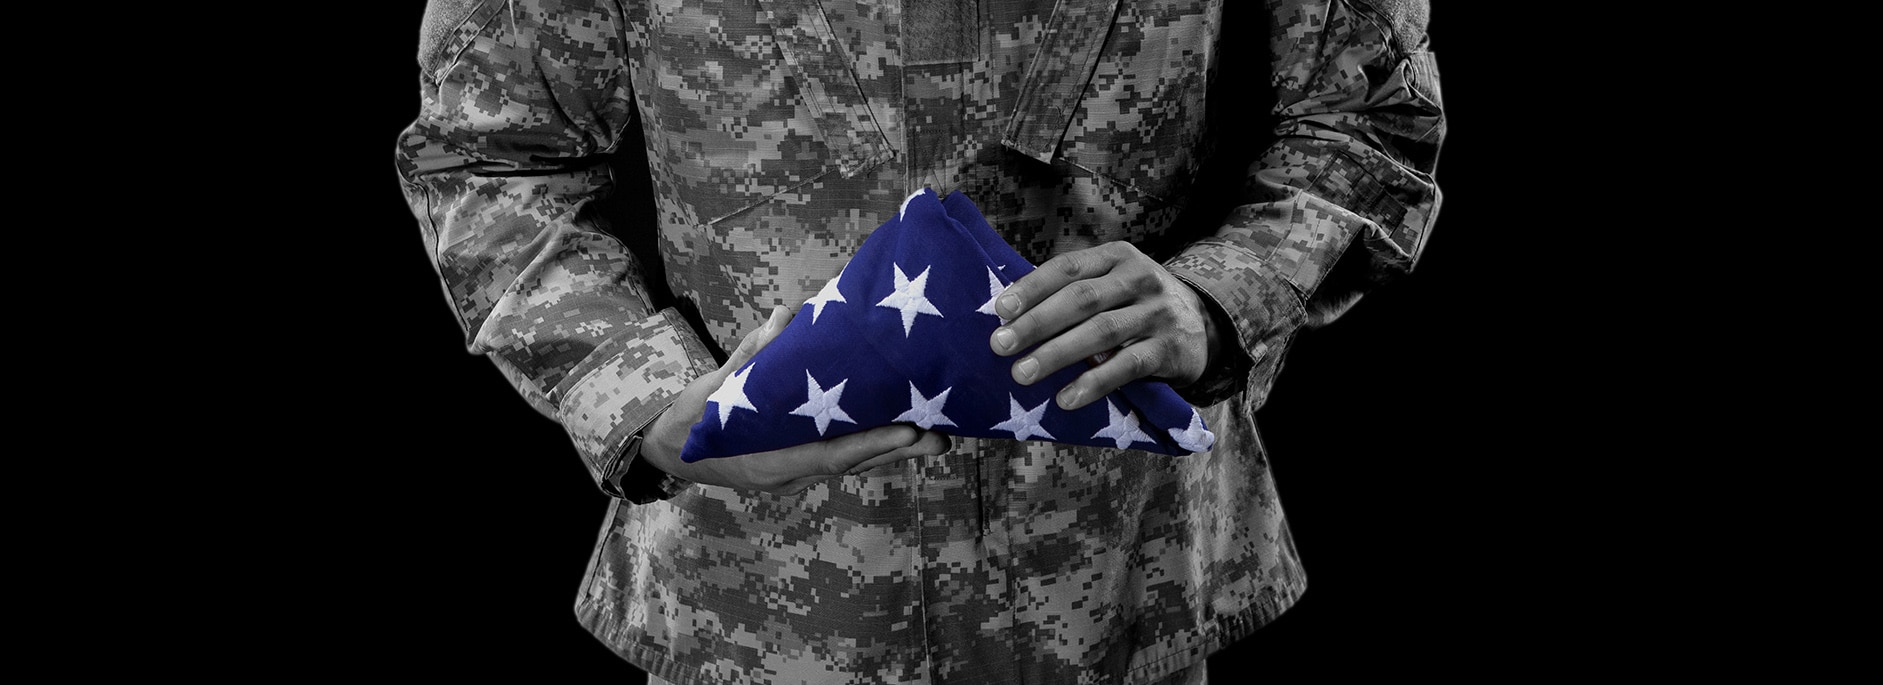 Honor veterans by helping prevent their suicides